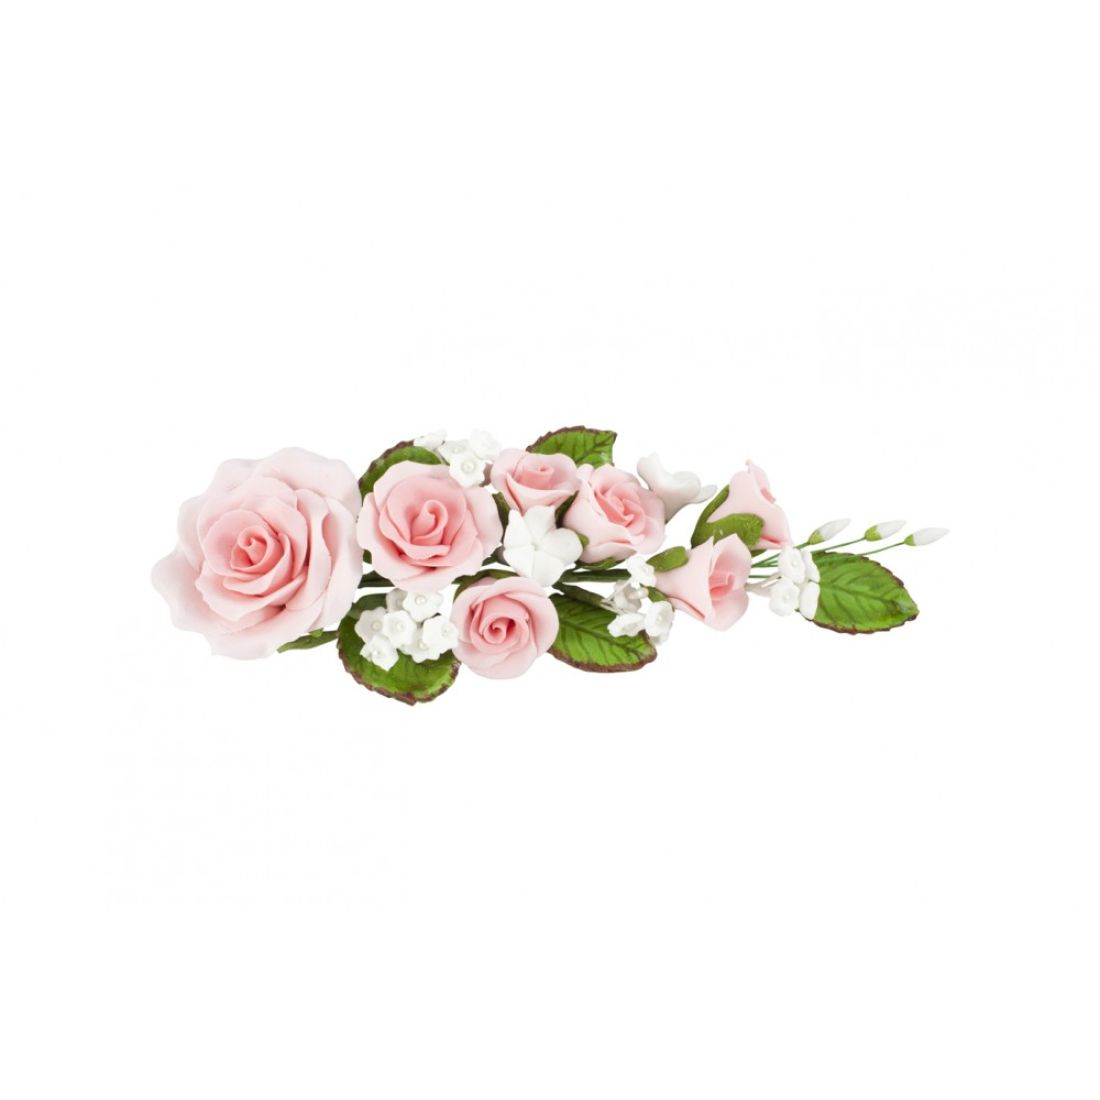 Pink Rose And Blossoms Sugar Flower Spray Squires Kitchen Shop